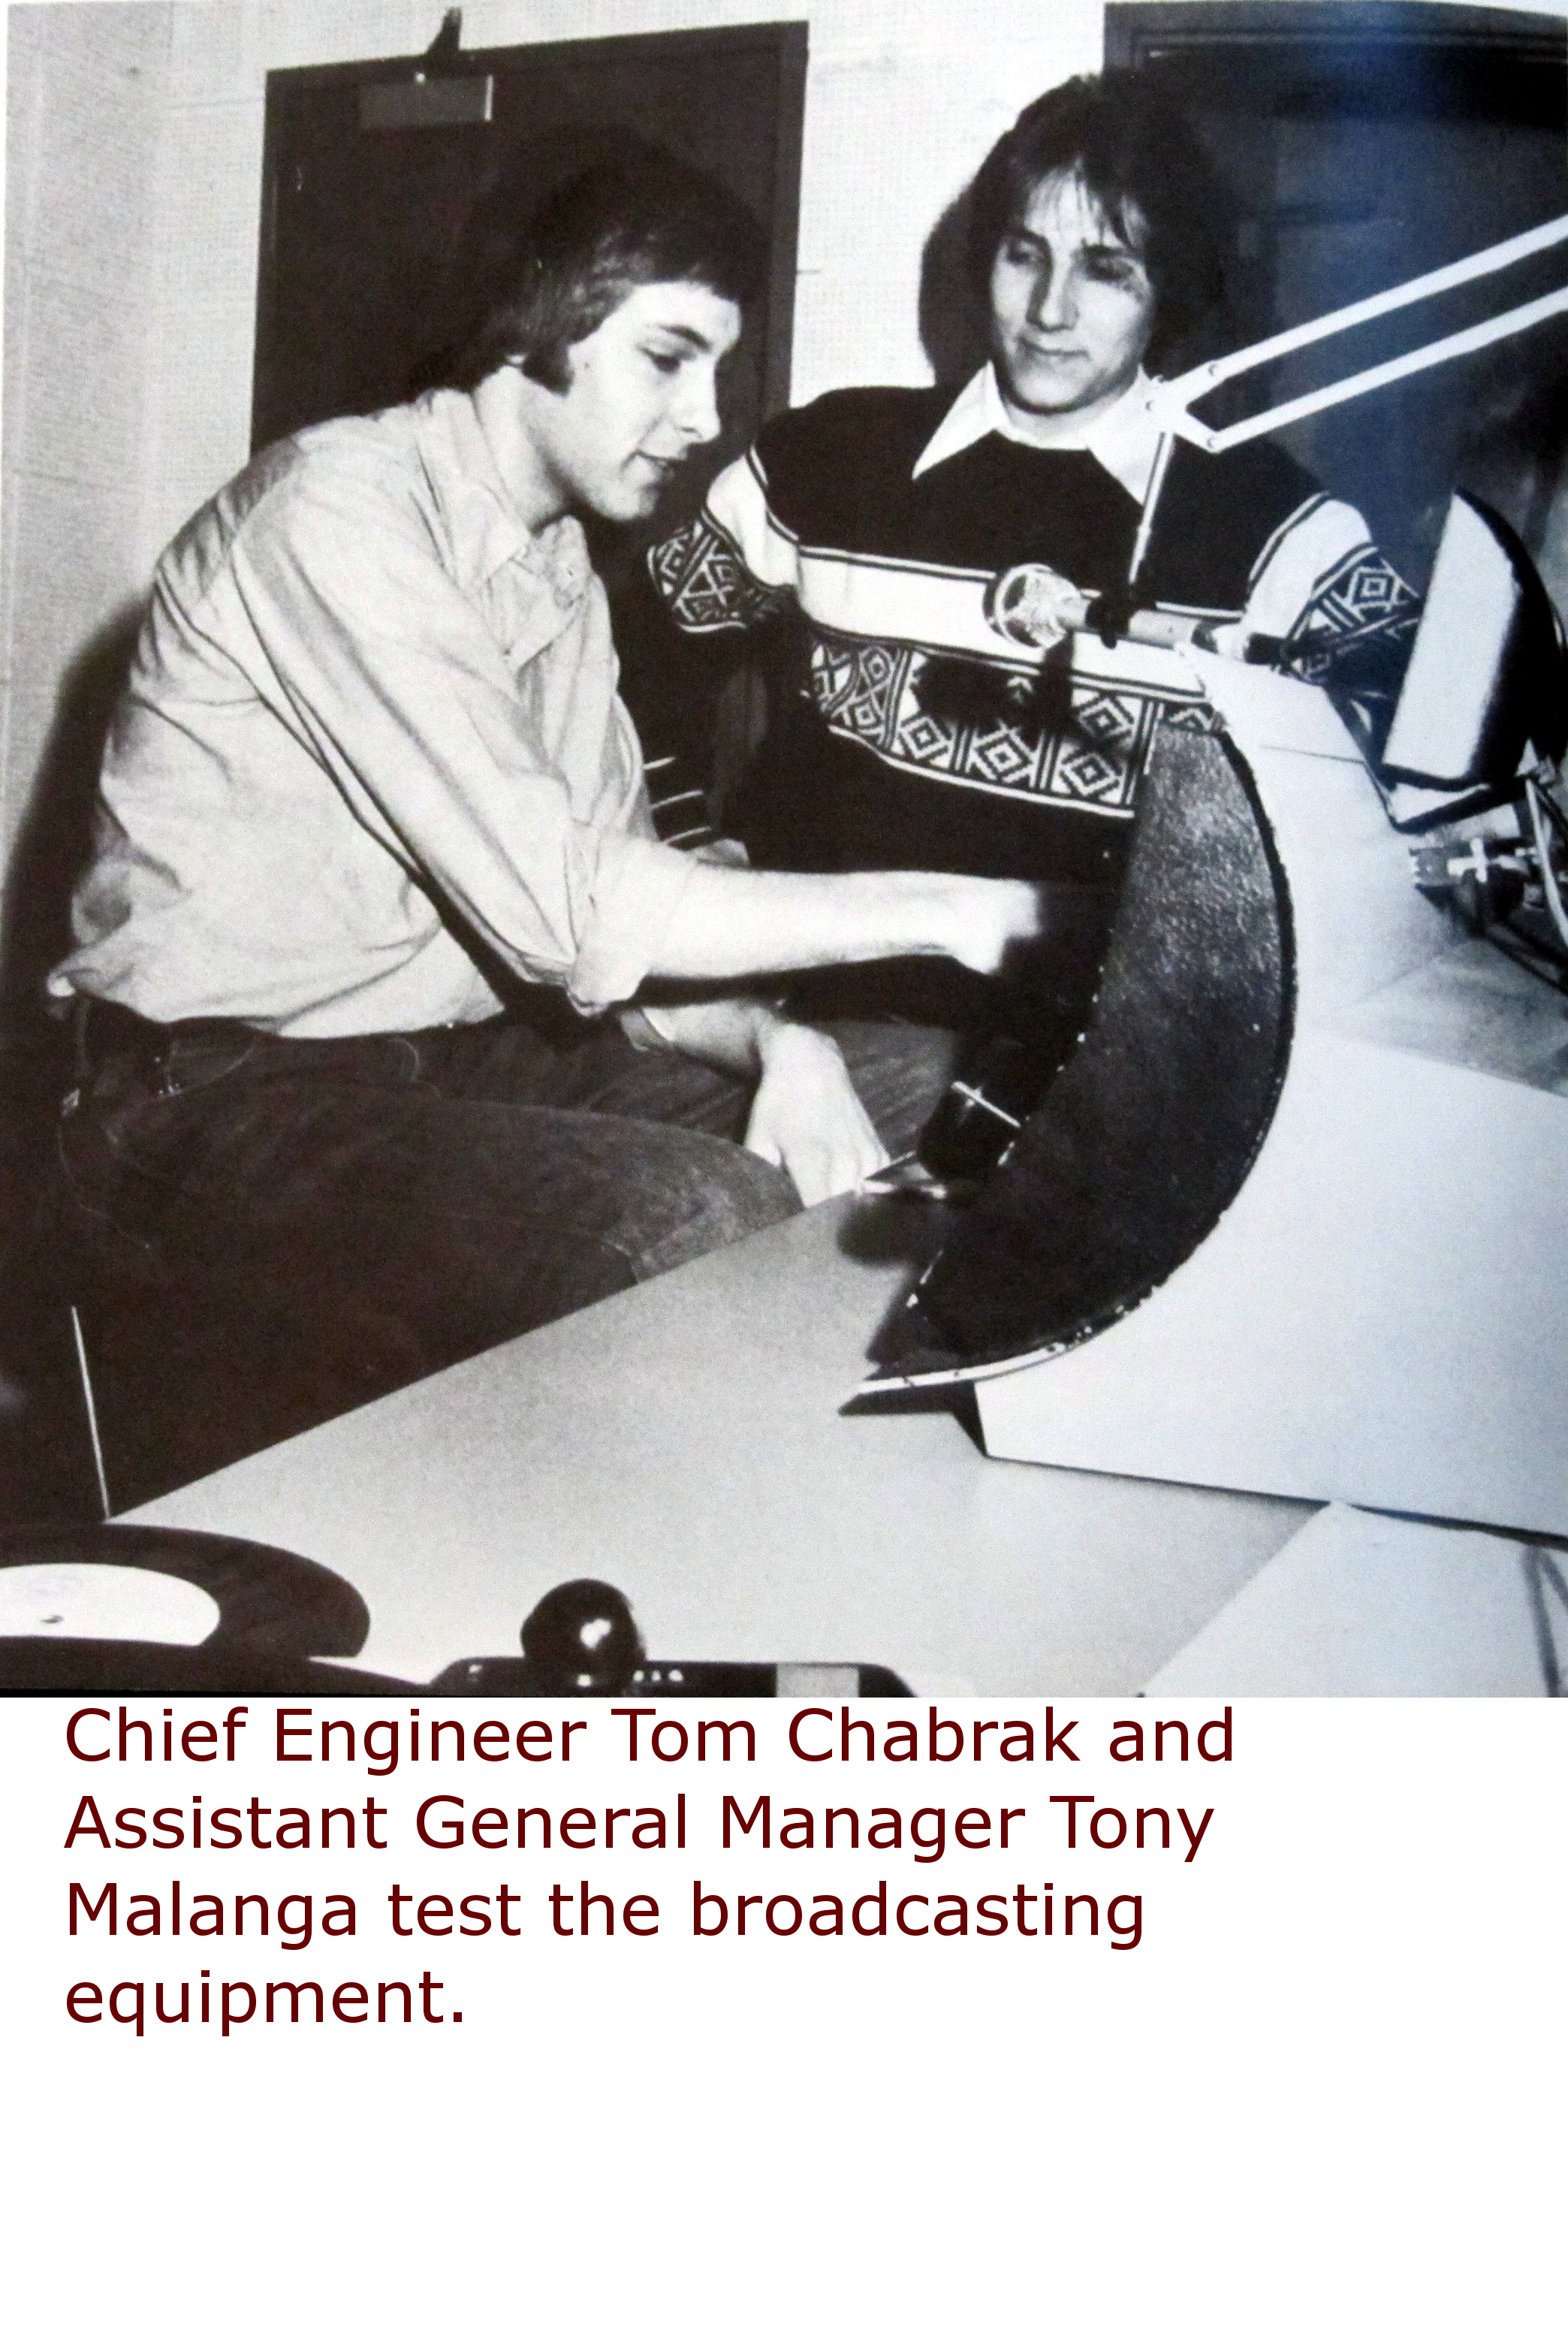 1979 - Chief Engineer Tom Chabrak and Assistant General Manager Tony Malanga.